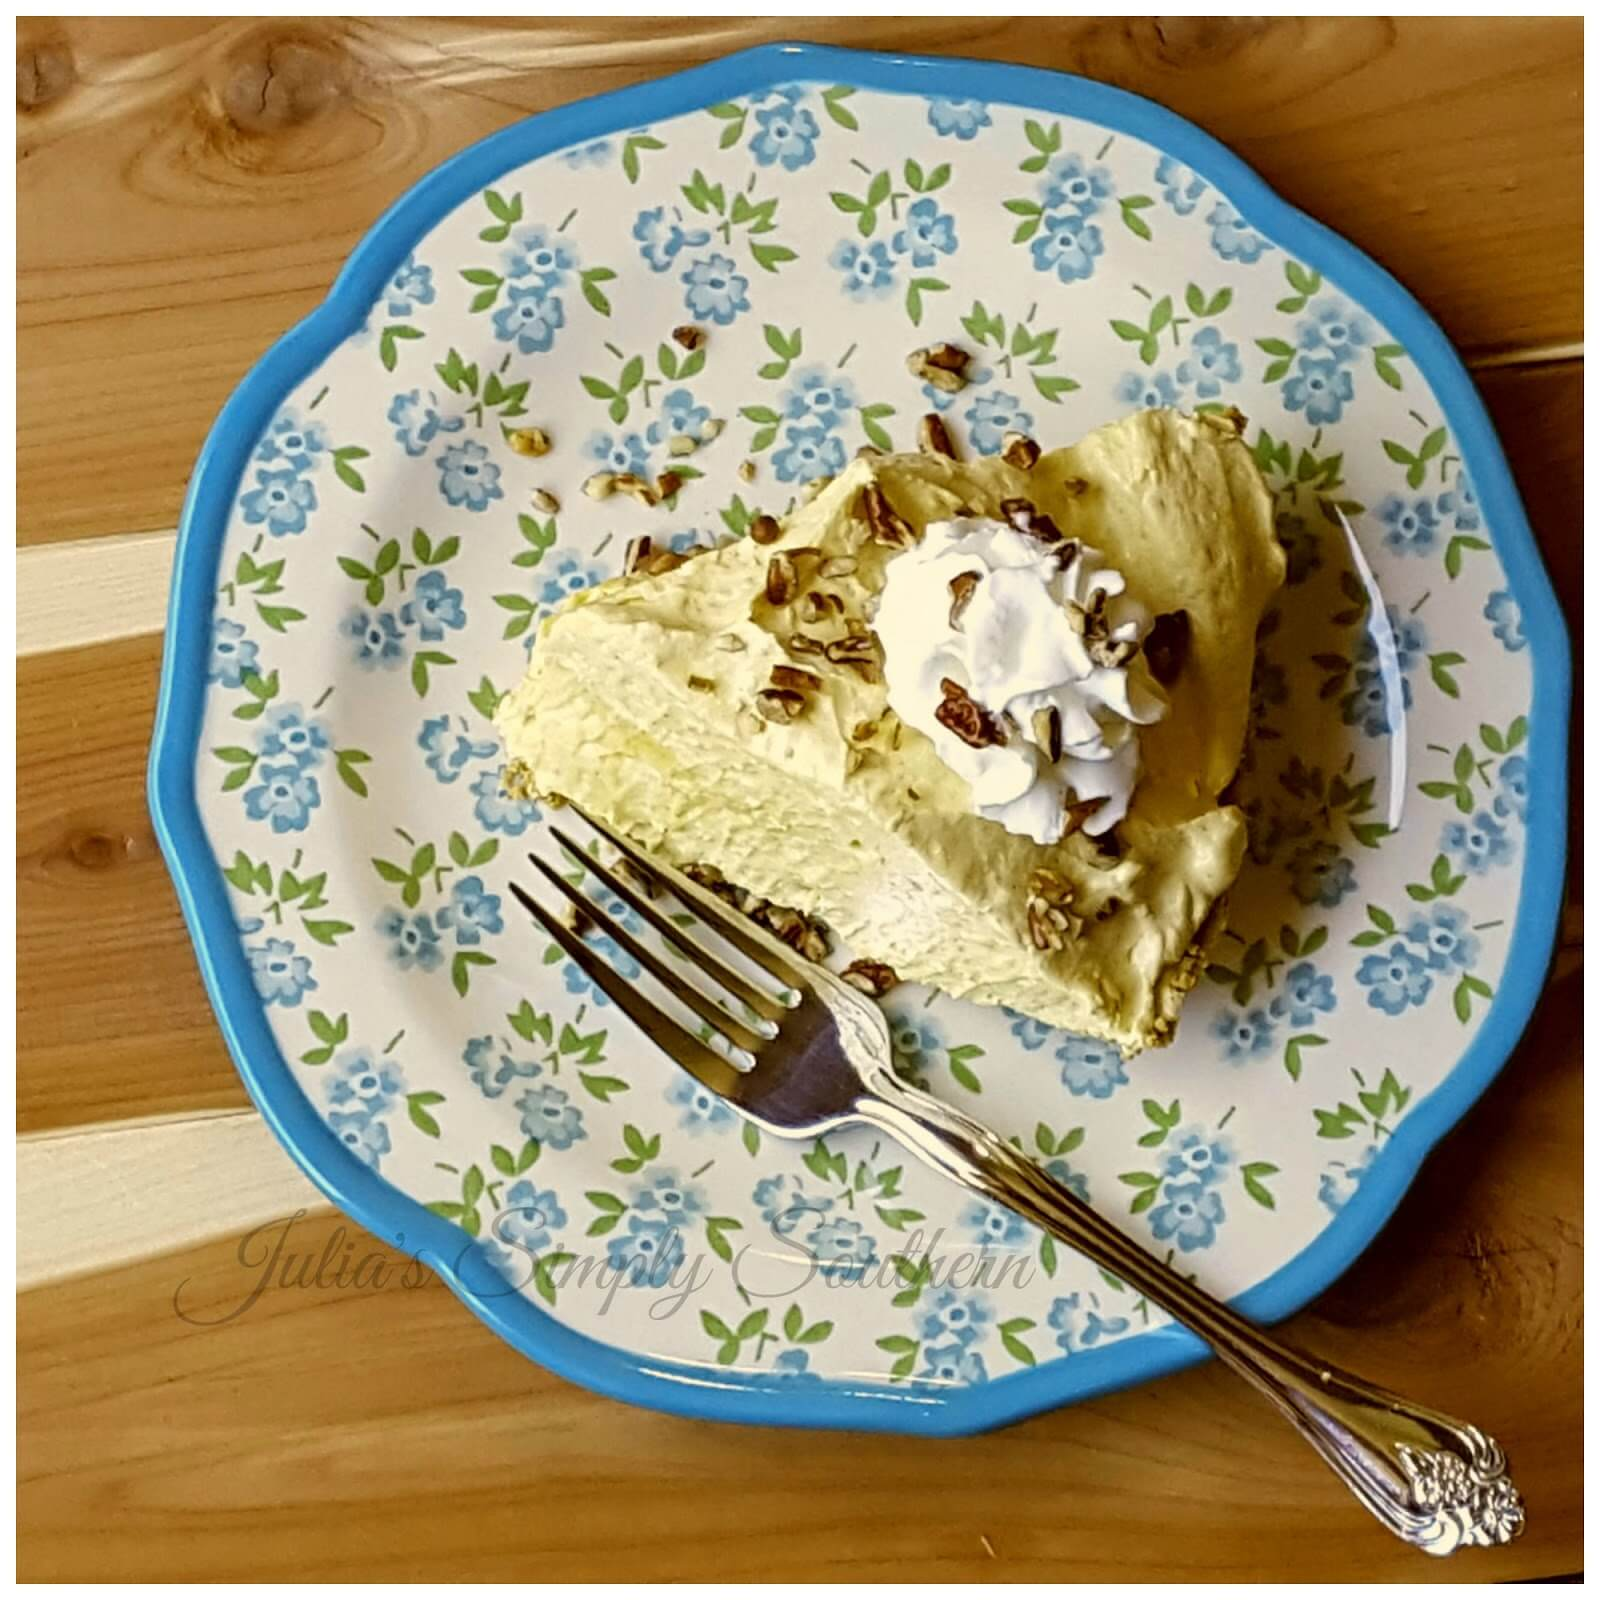 No Bake Pumpkin Pie Dessert on a blue and white plate